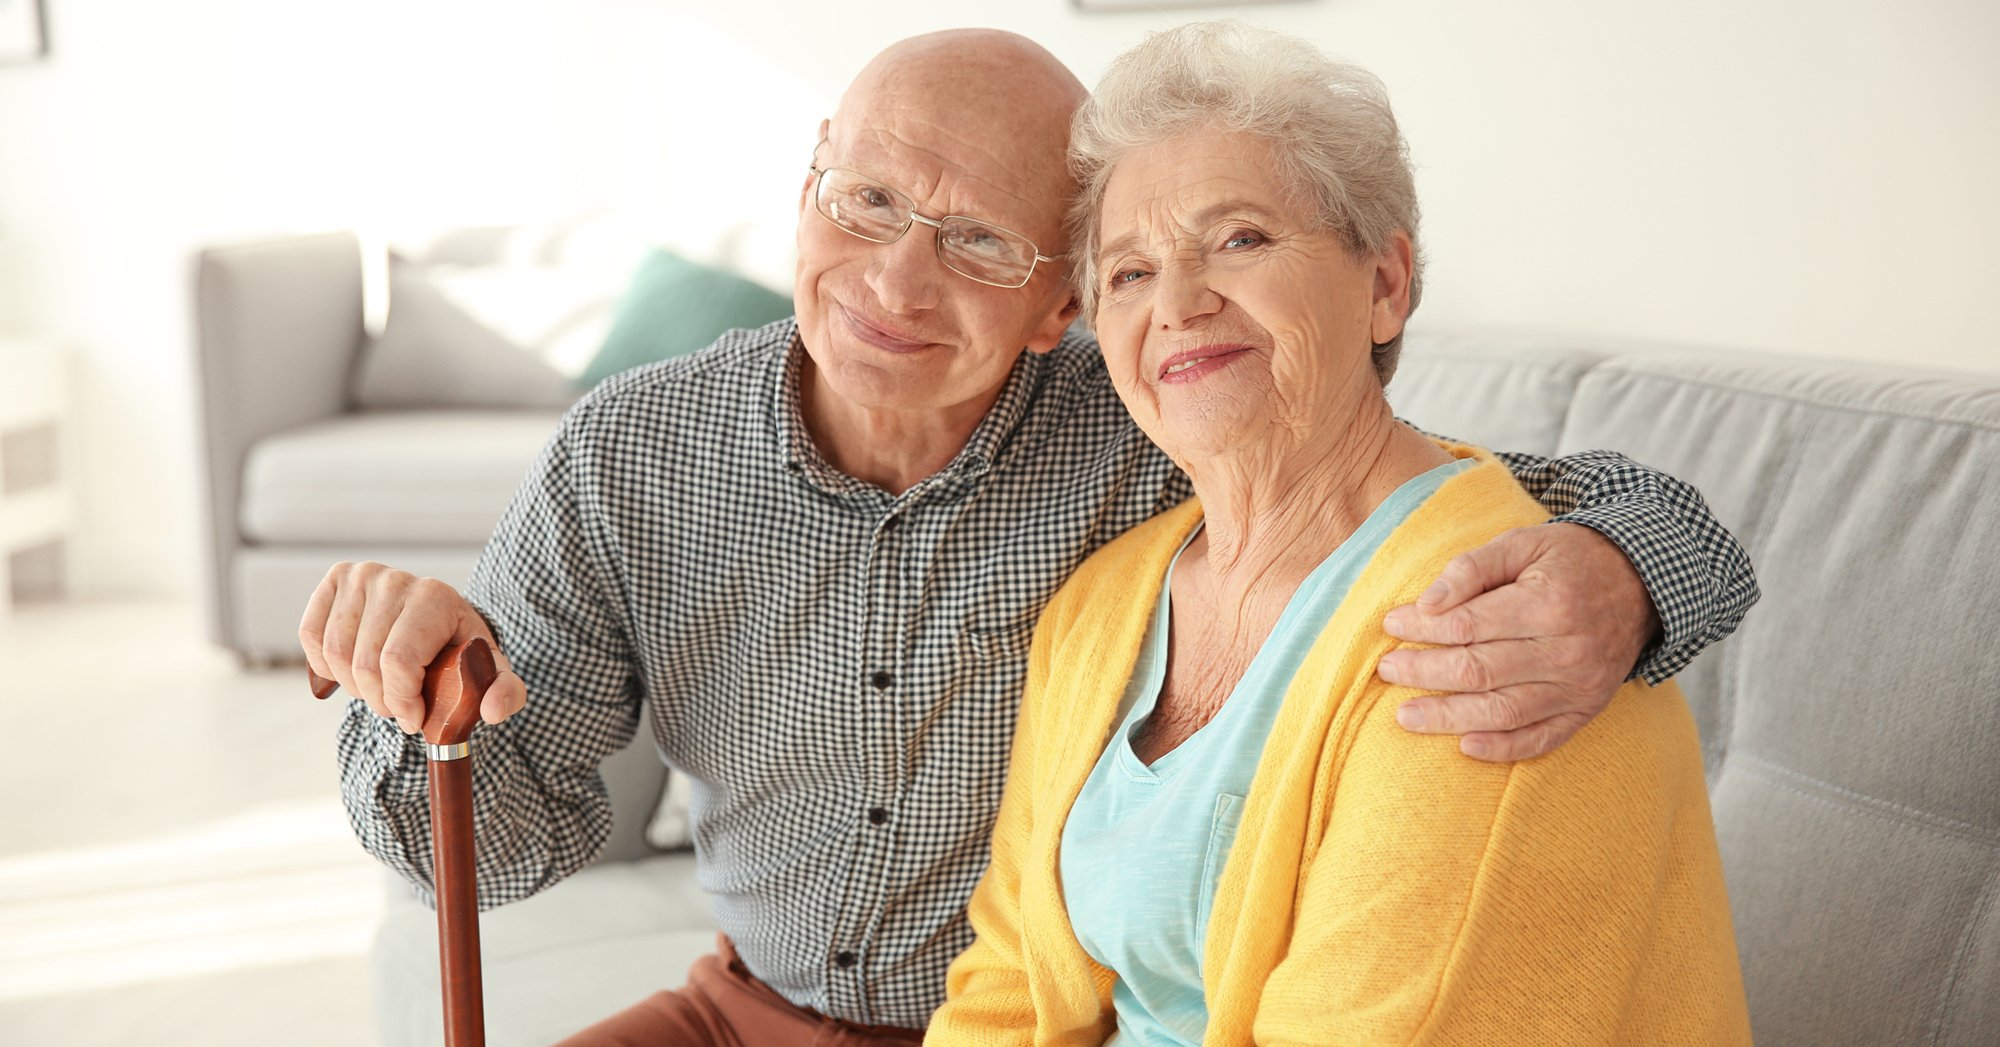 Hospice vs palliative care: What is the difference?